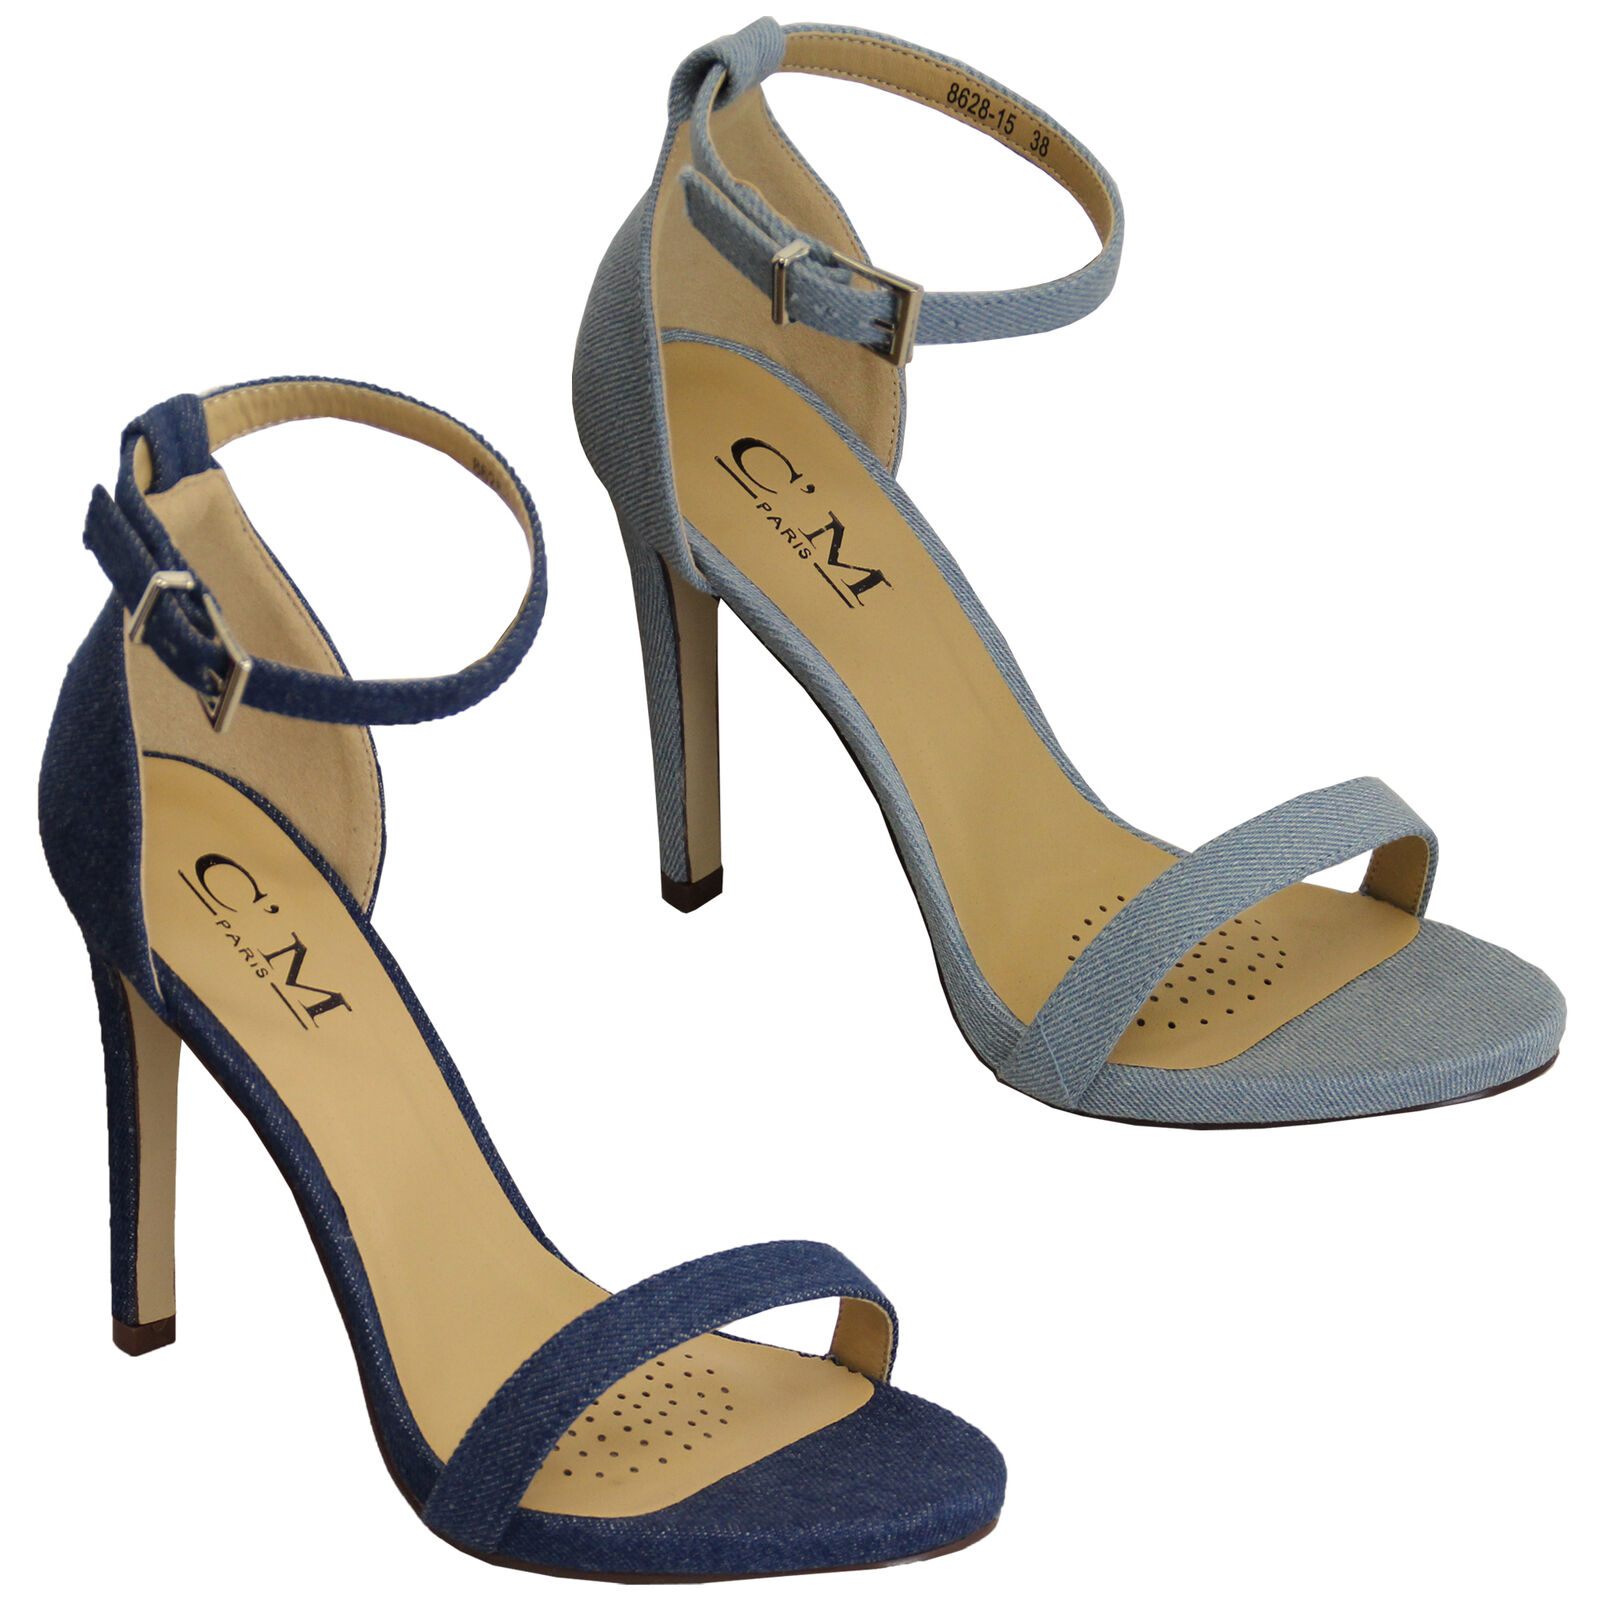 Ladies Denim Sandals Womens Ankle Strap Stiletto Heel Buckle Open Toe Shoes New